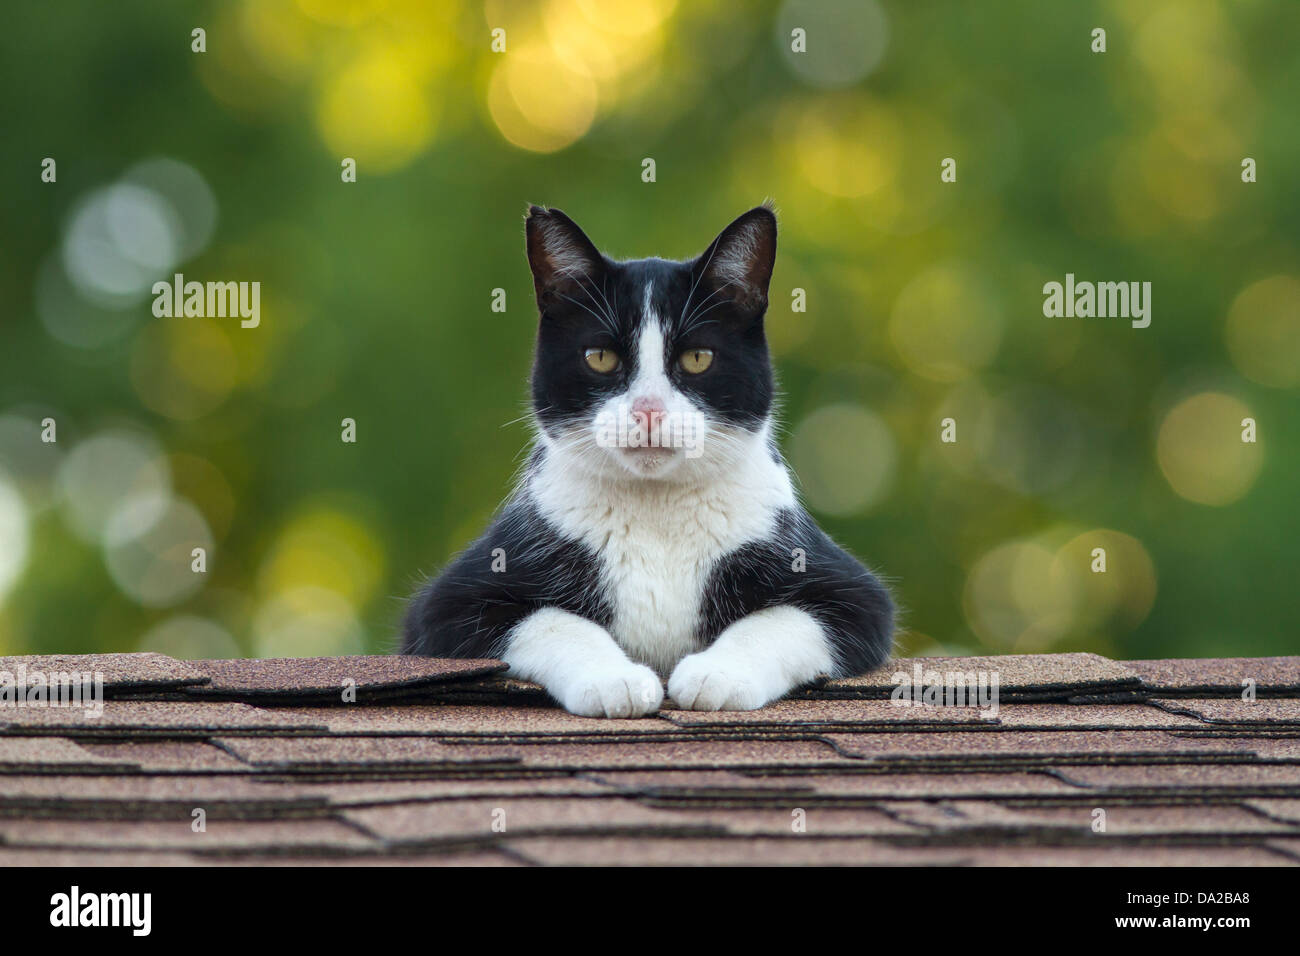 Male Tuxedo cat on top of roof staring intently - Stock Image